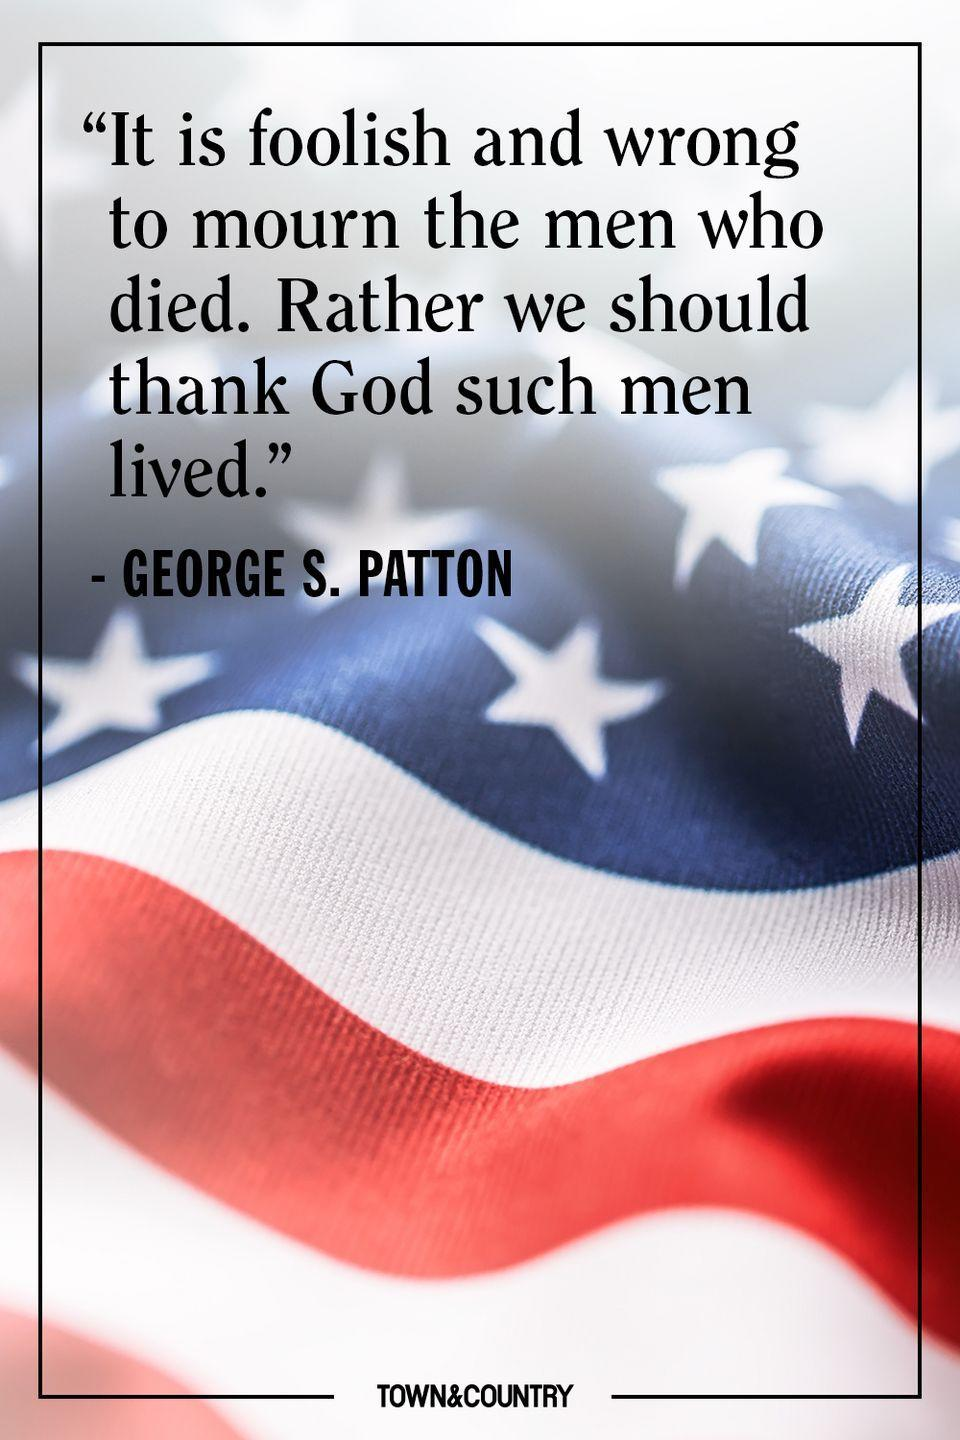 "<p>""It is foolish and wrong to mourn the men who died. Rather we should thank God such men lived.""</p><p>– George S. Patton </p>"